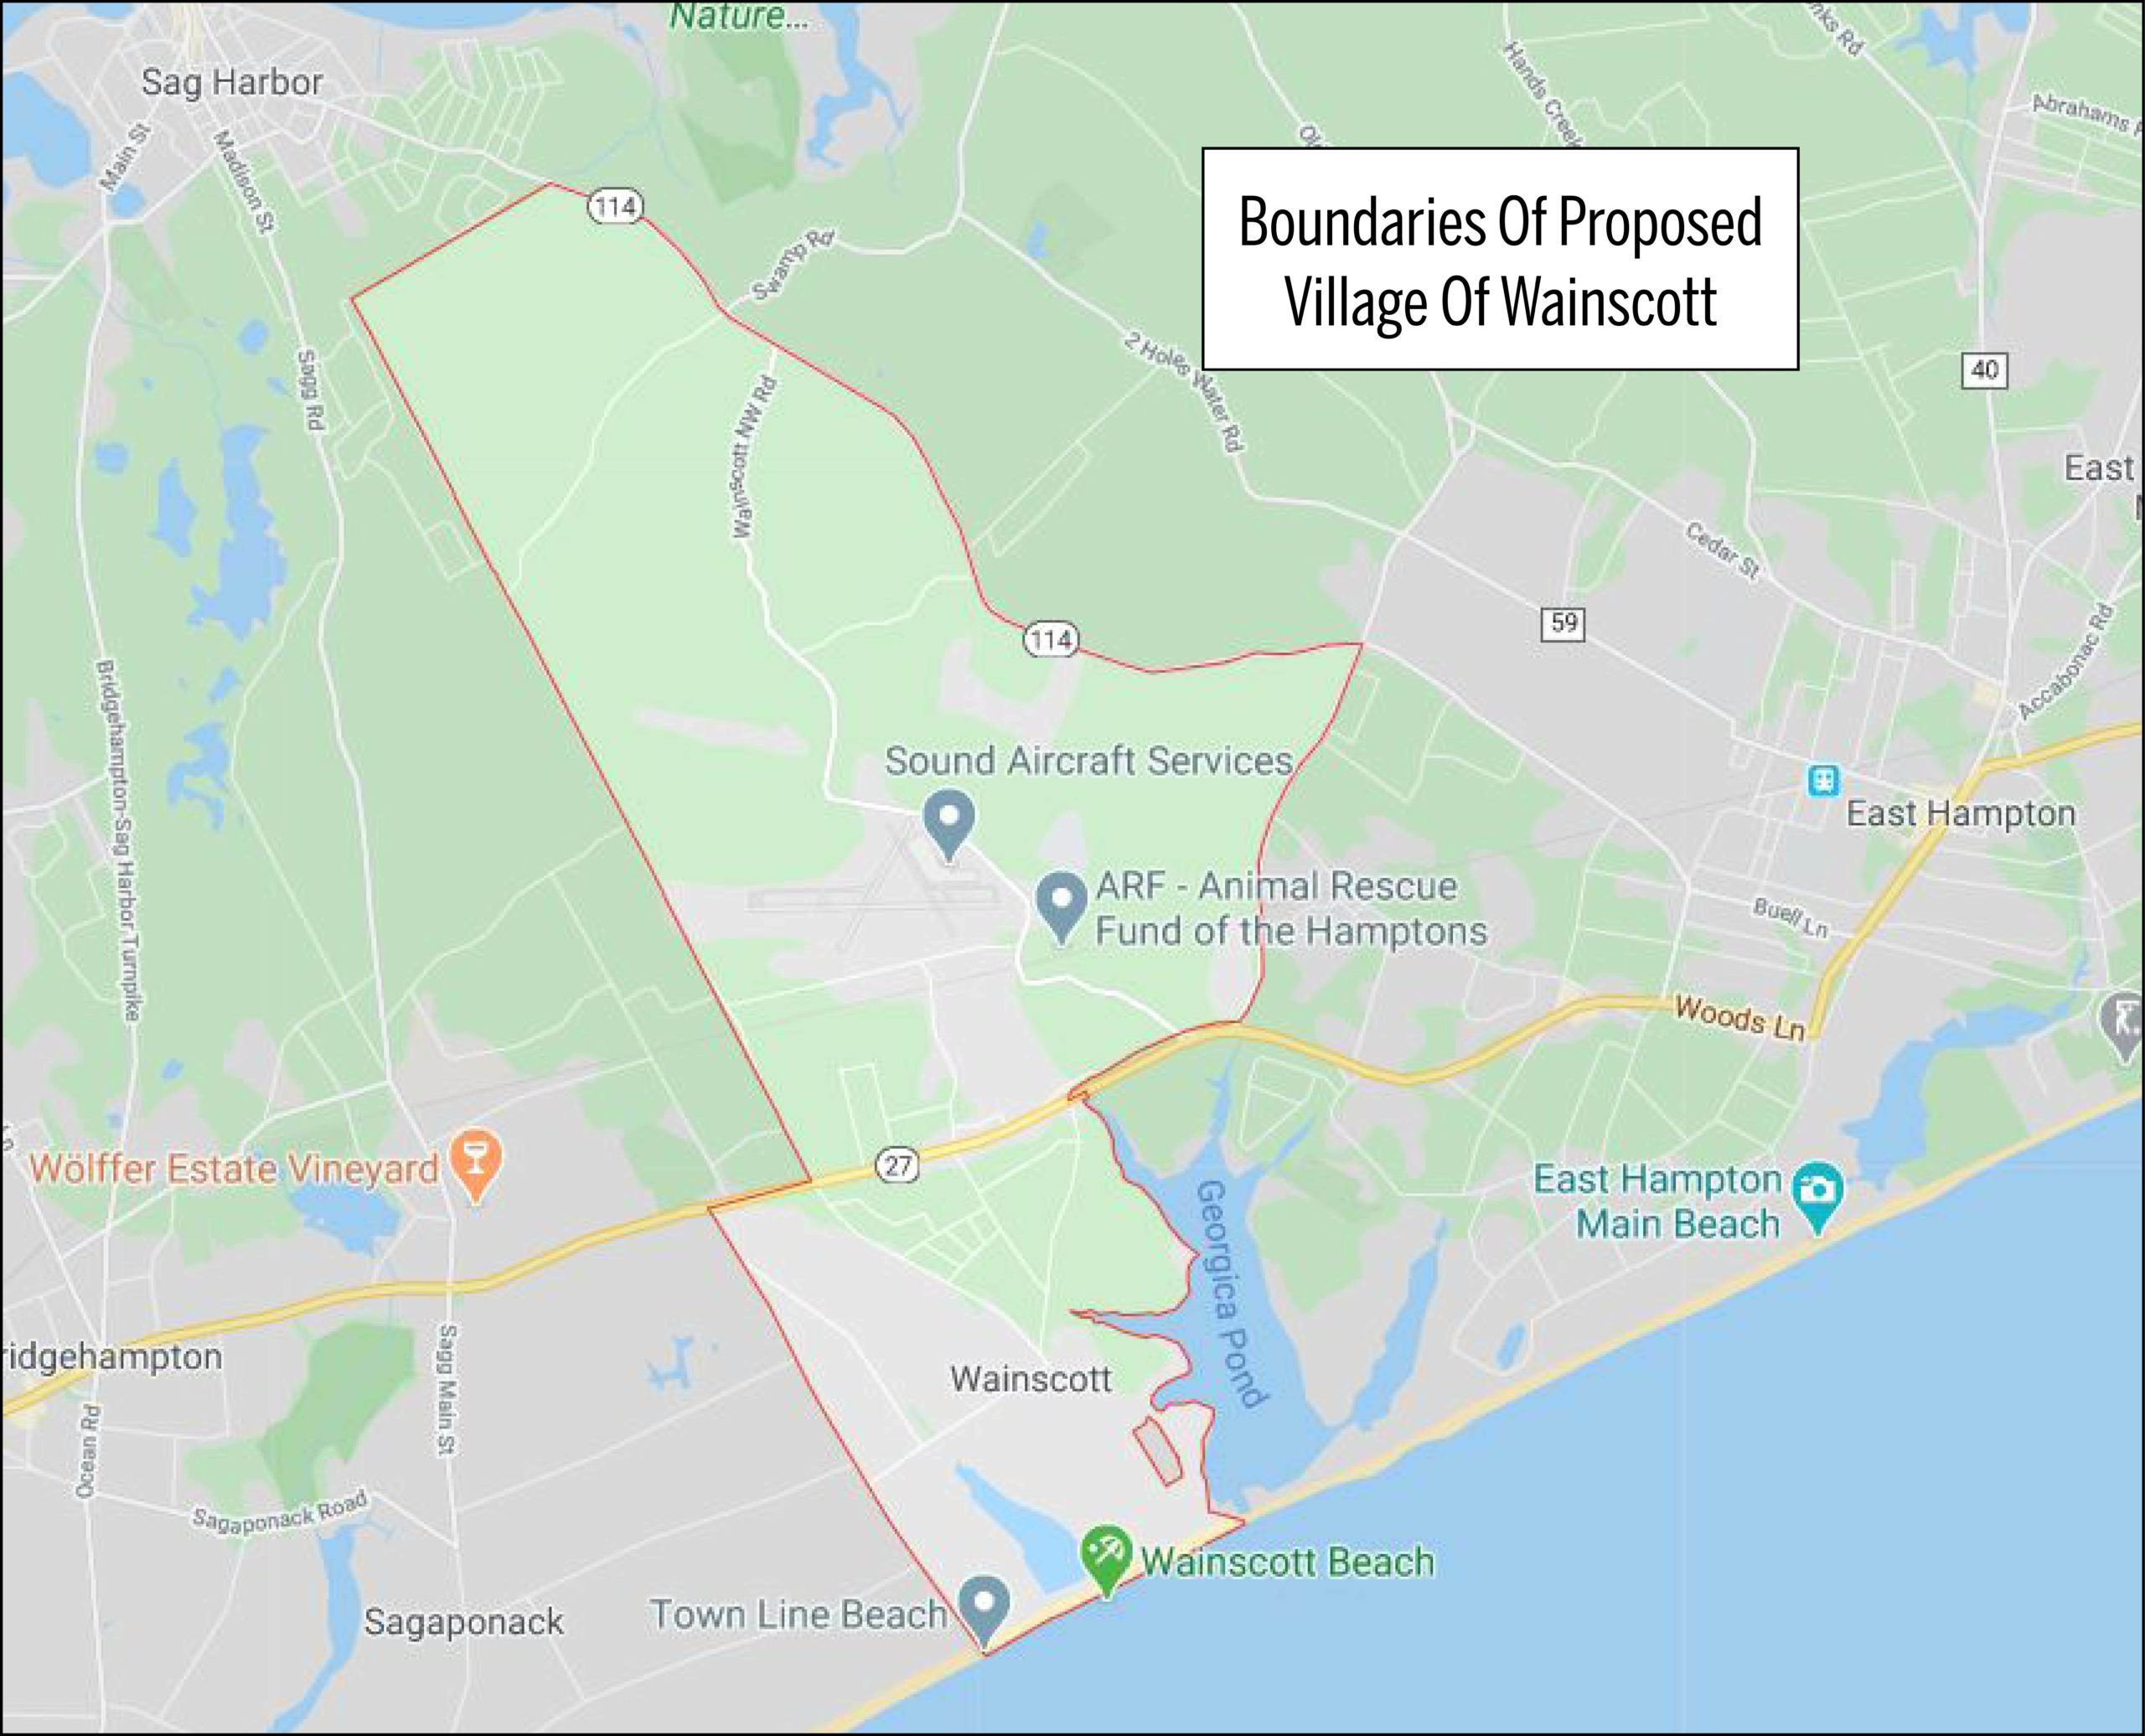 The boundaries of the proposed village follow the outlines of the Wainscott School District. Town Line Road is the western boundary and Route 114 to the north.